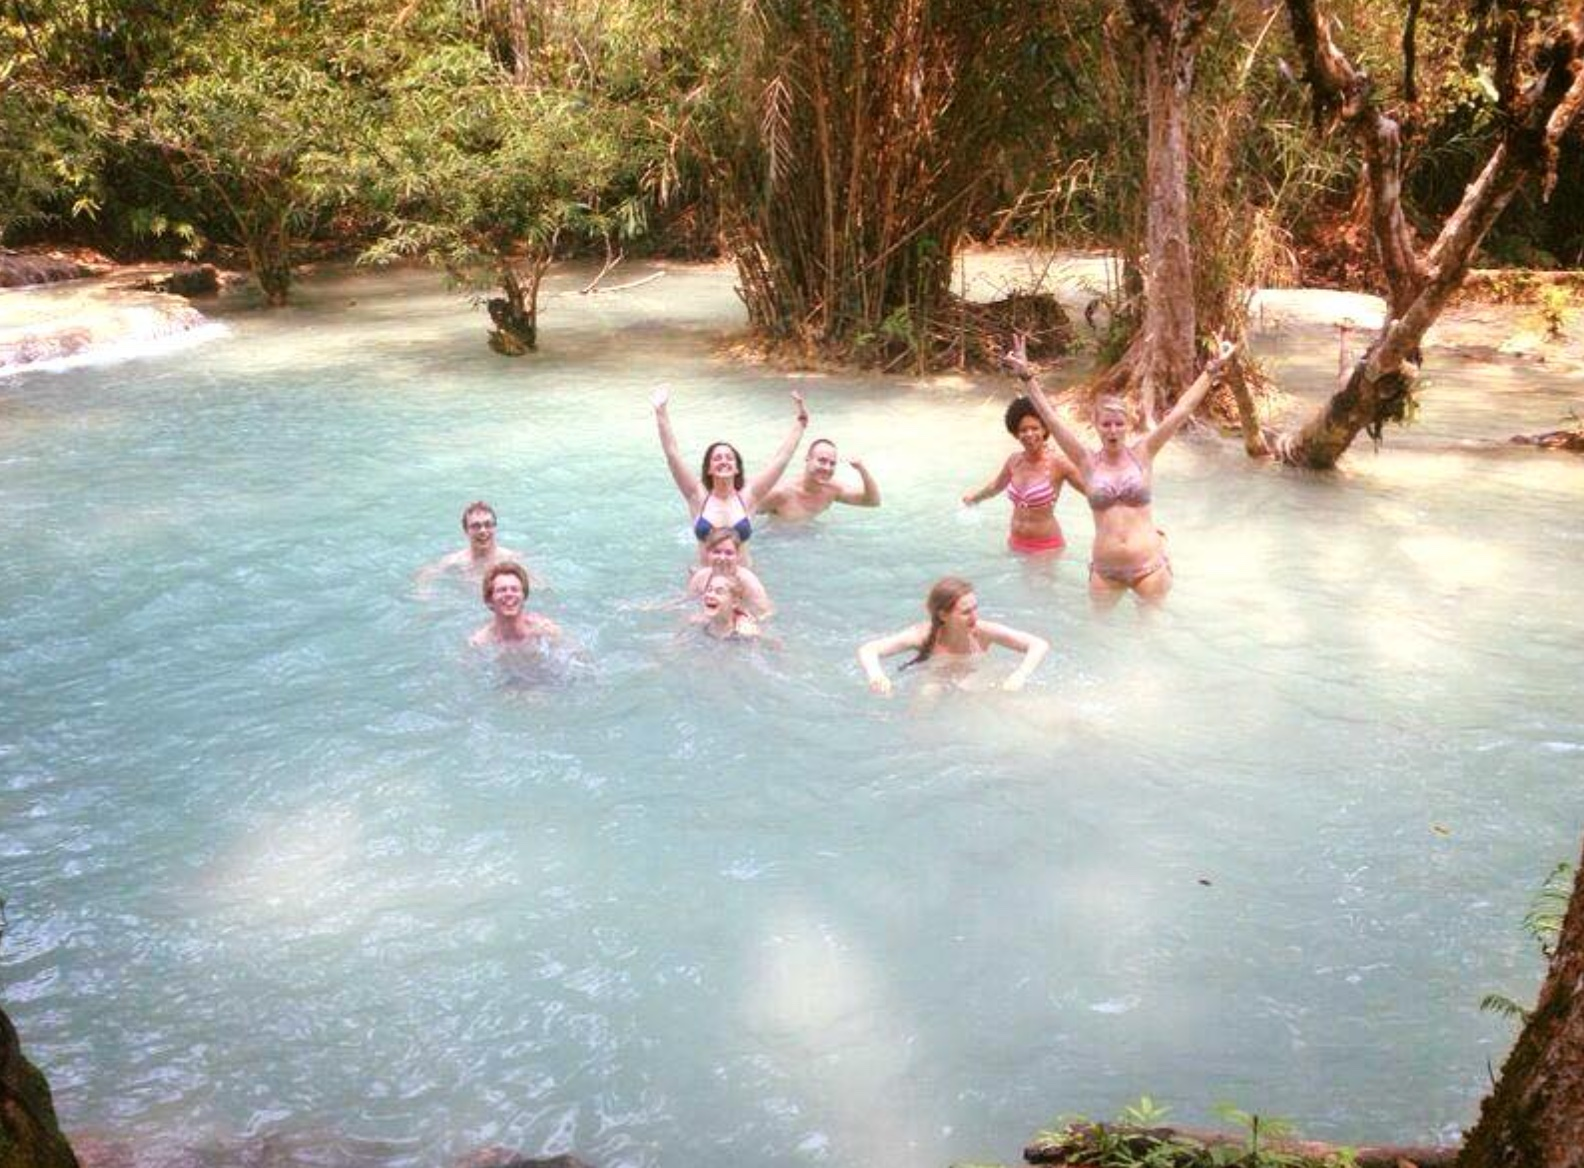 Top 5 Inspirational Gap Year ideas - how about bathing in a natural spring in Thailand?